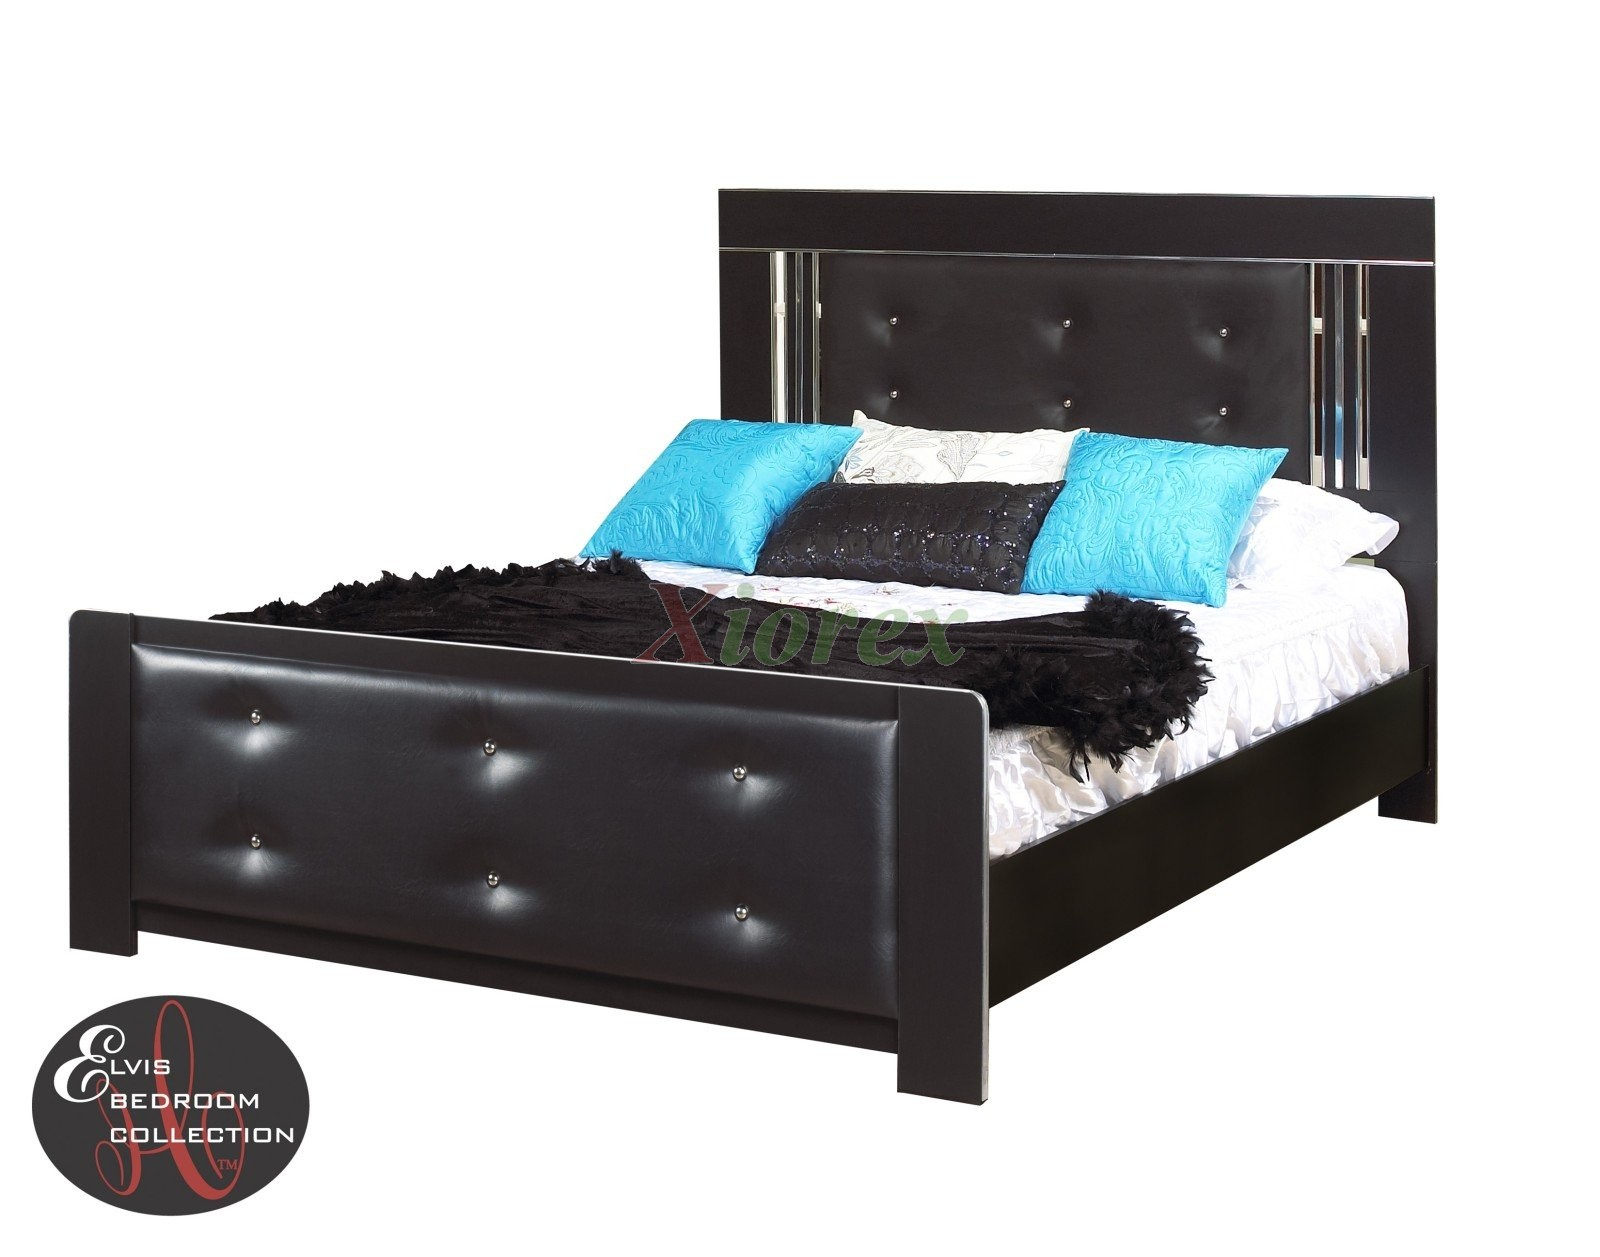 Black Media Chest For Bedroom Life Line Elvis Bed Sets w/ Black Bed Frame & White Bed Frame | Xiorex